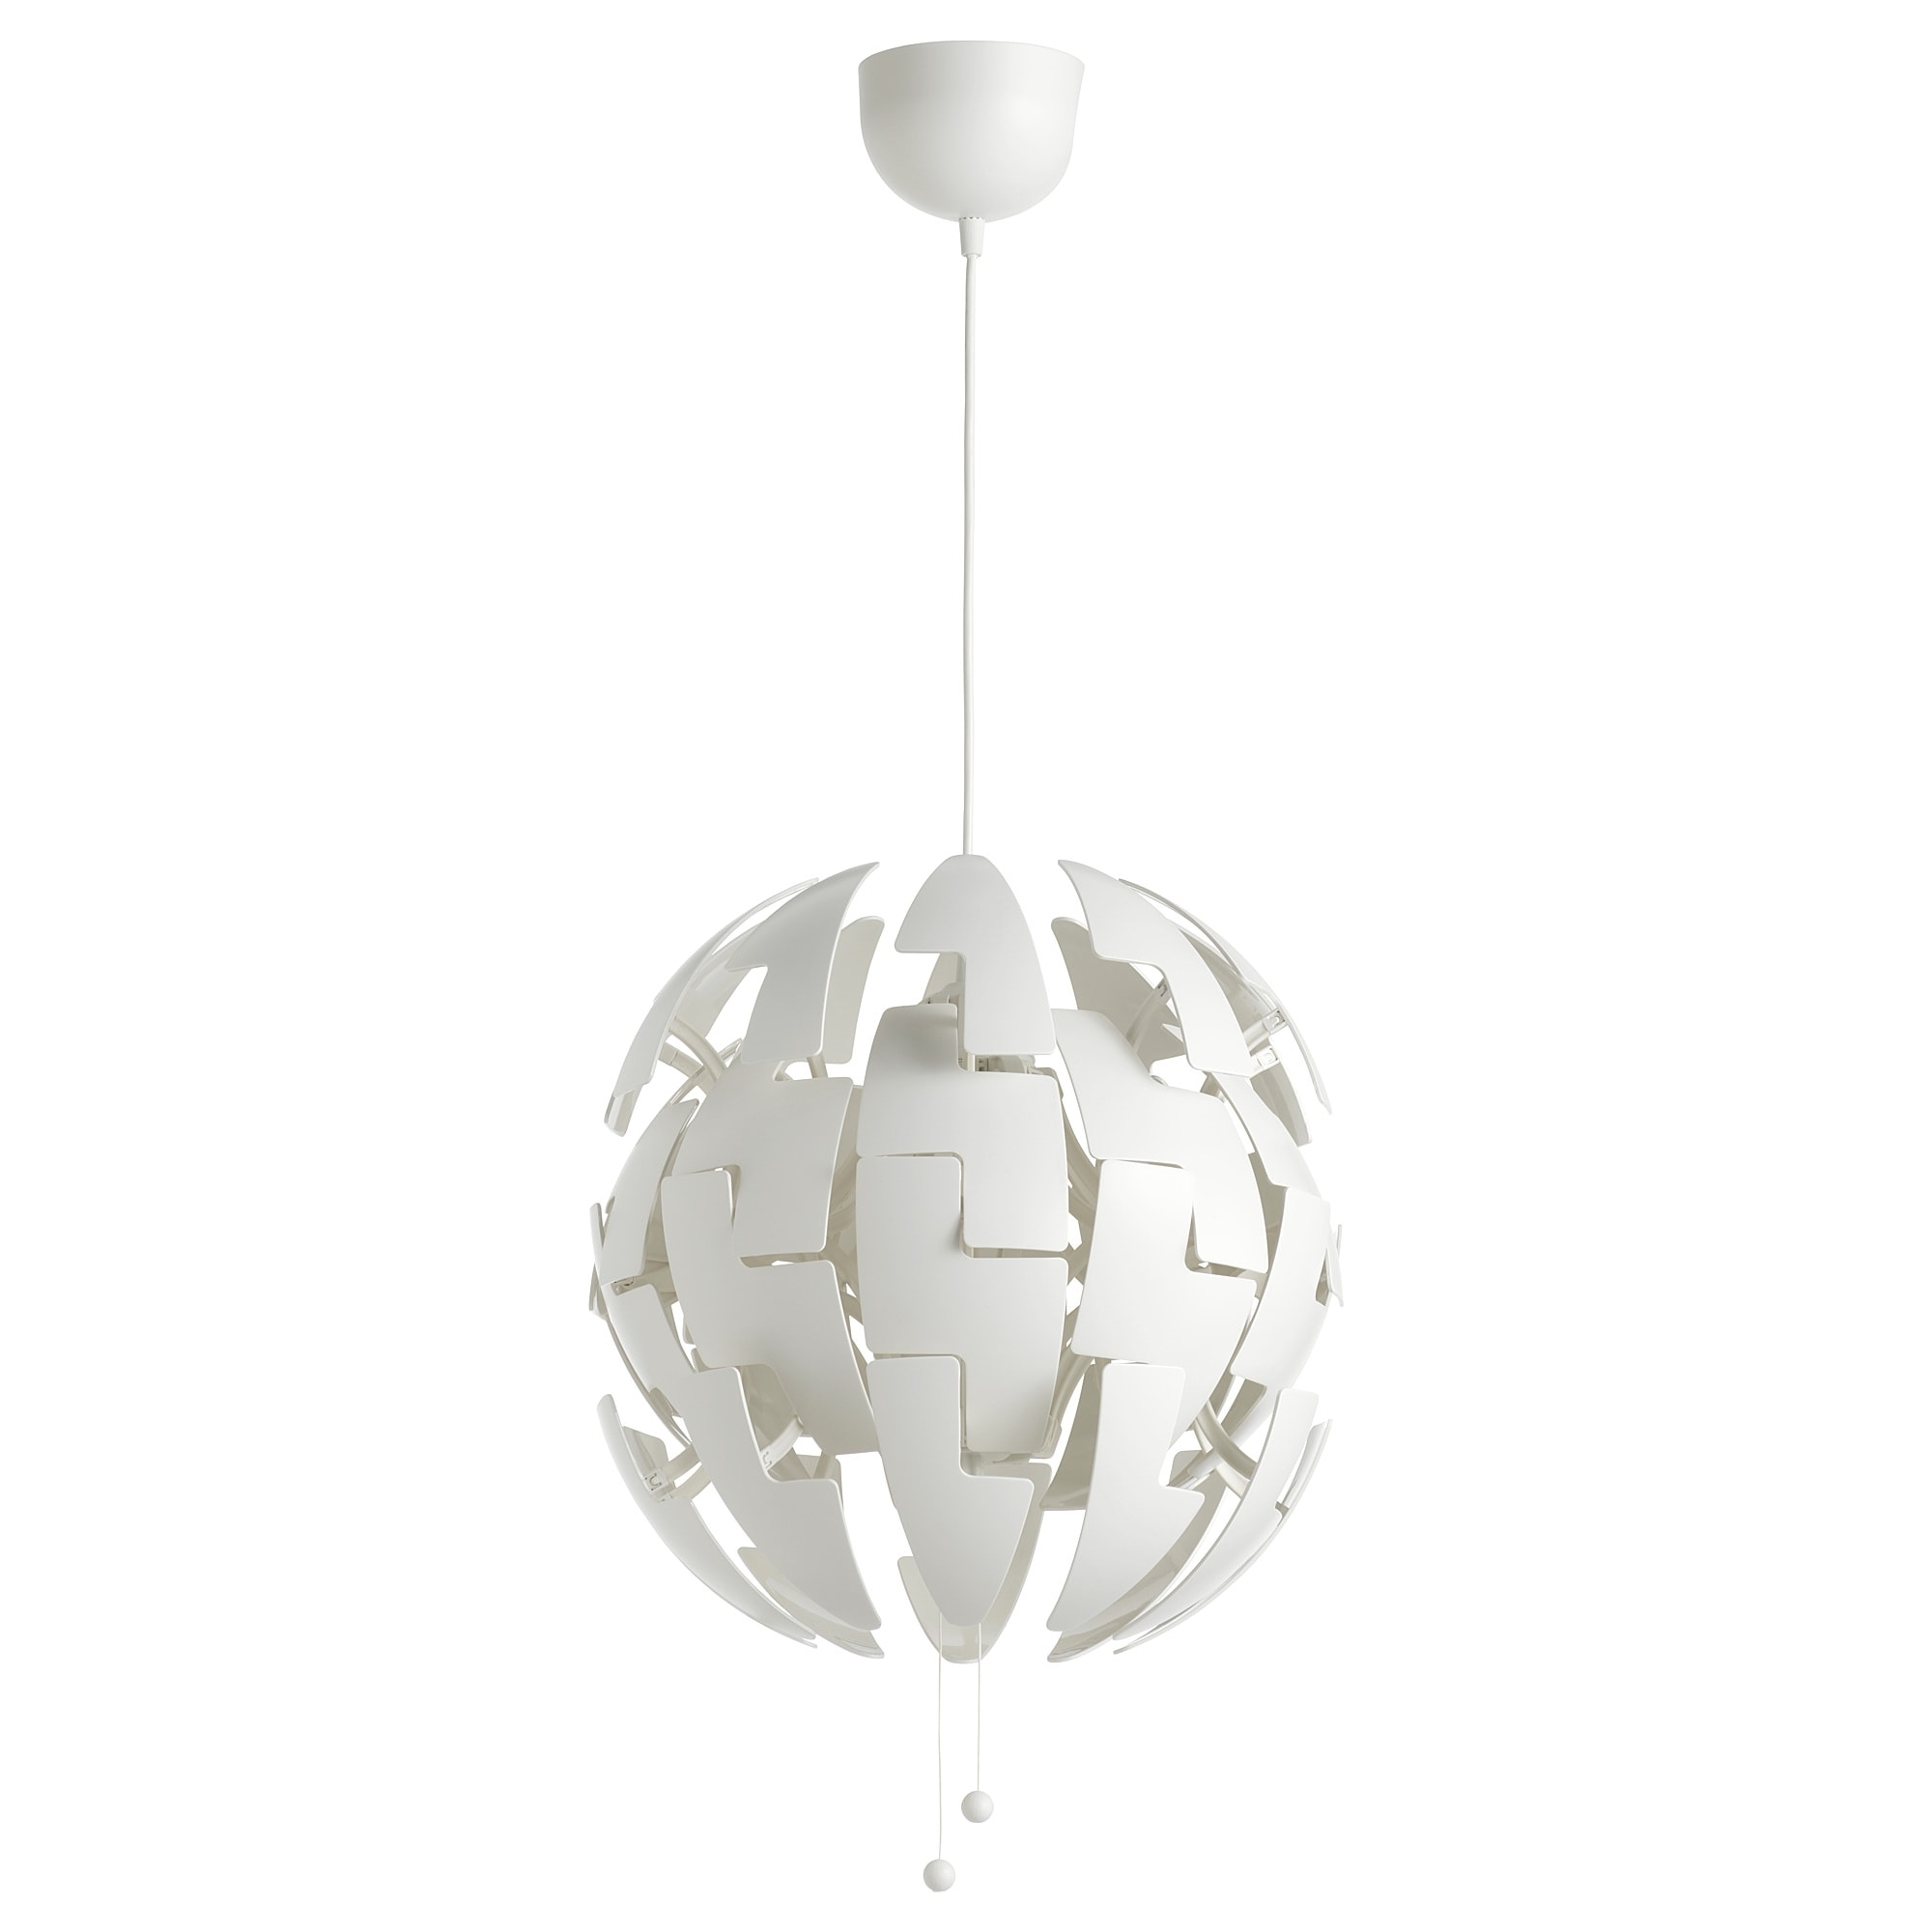 Ceiling Lights & Led Ceiling Lights Pertaining To Favorite Ikea Outdoor Ceiling Fans (View 2 of 20)